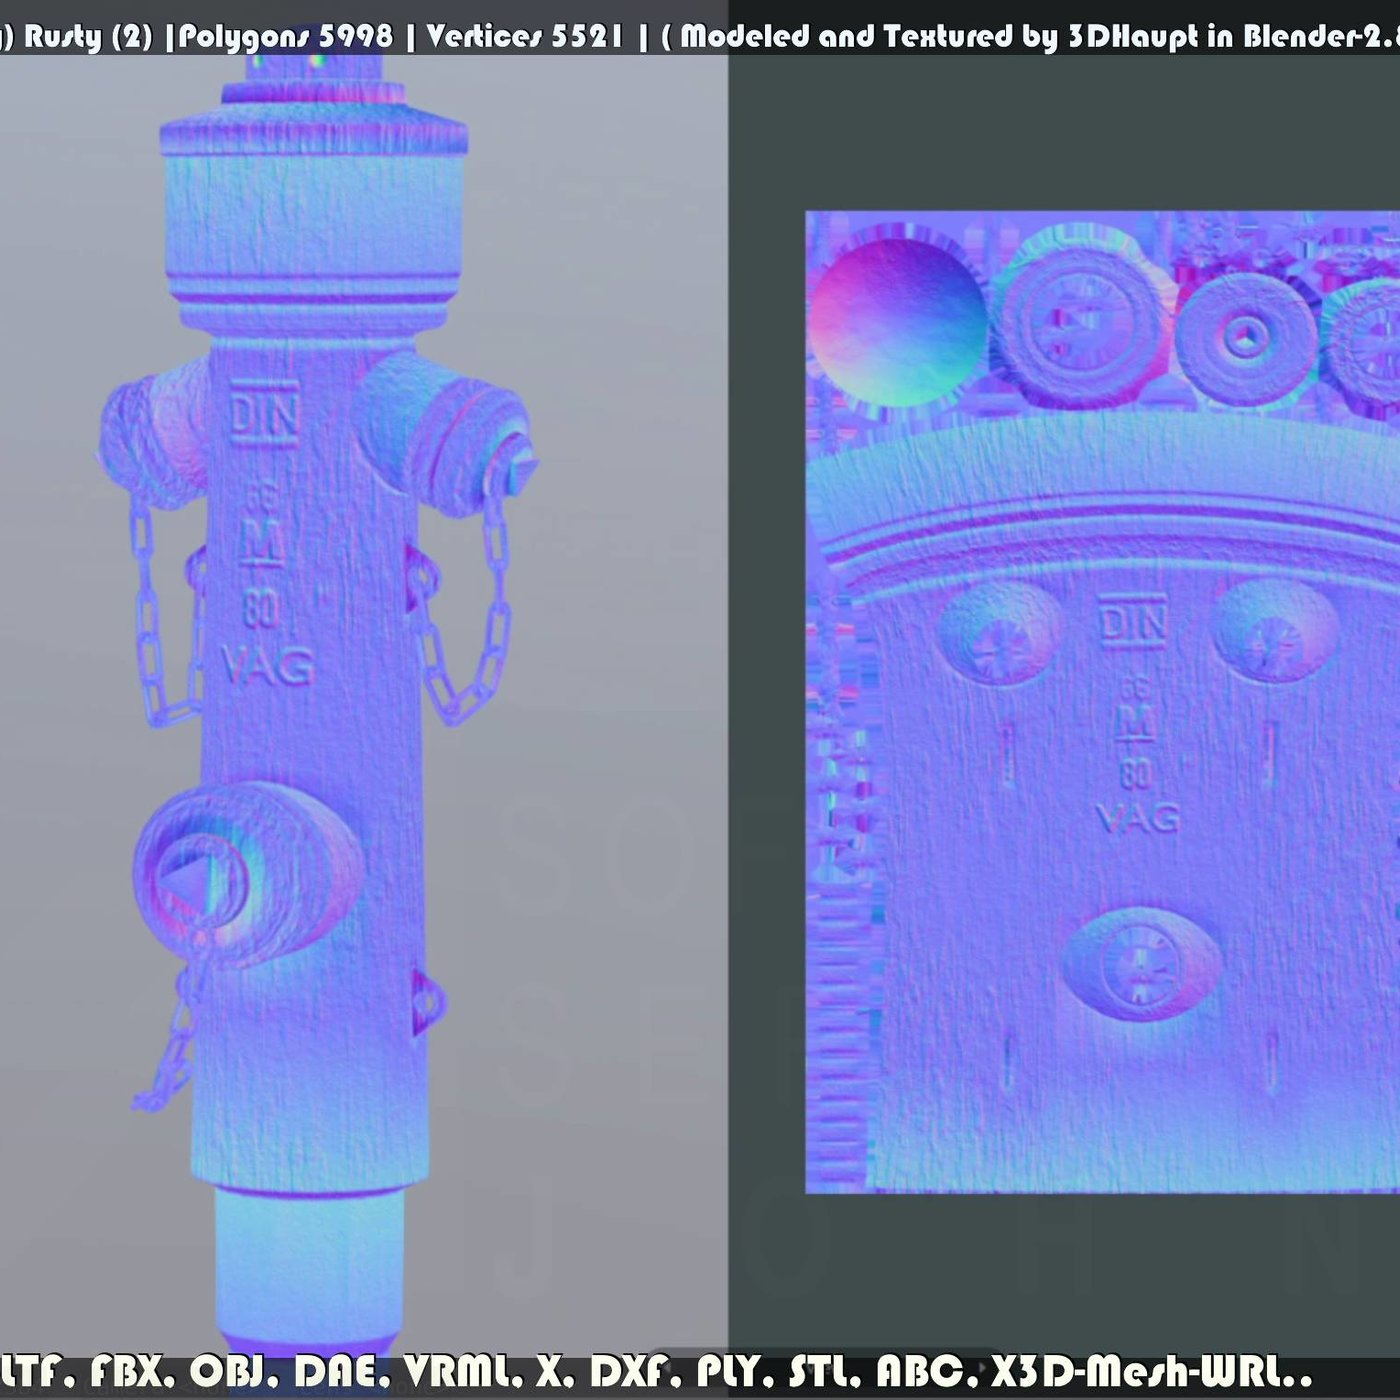 Fire Hydrant VAG Version 2 (Low-Poly) Rusty (2)